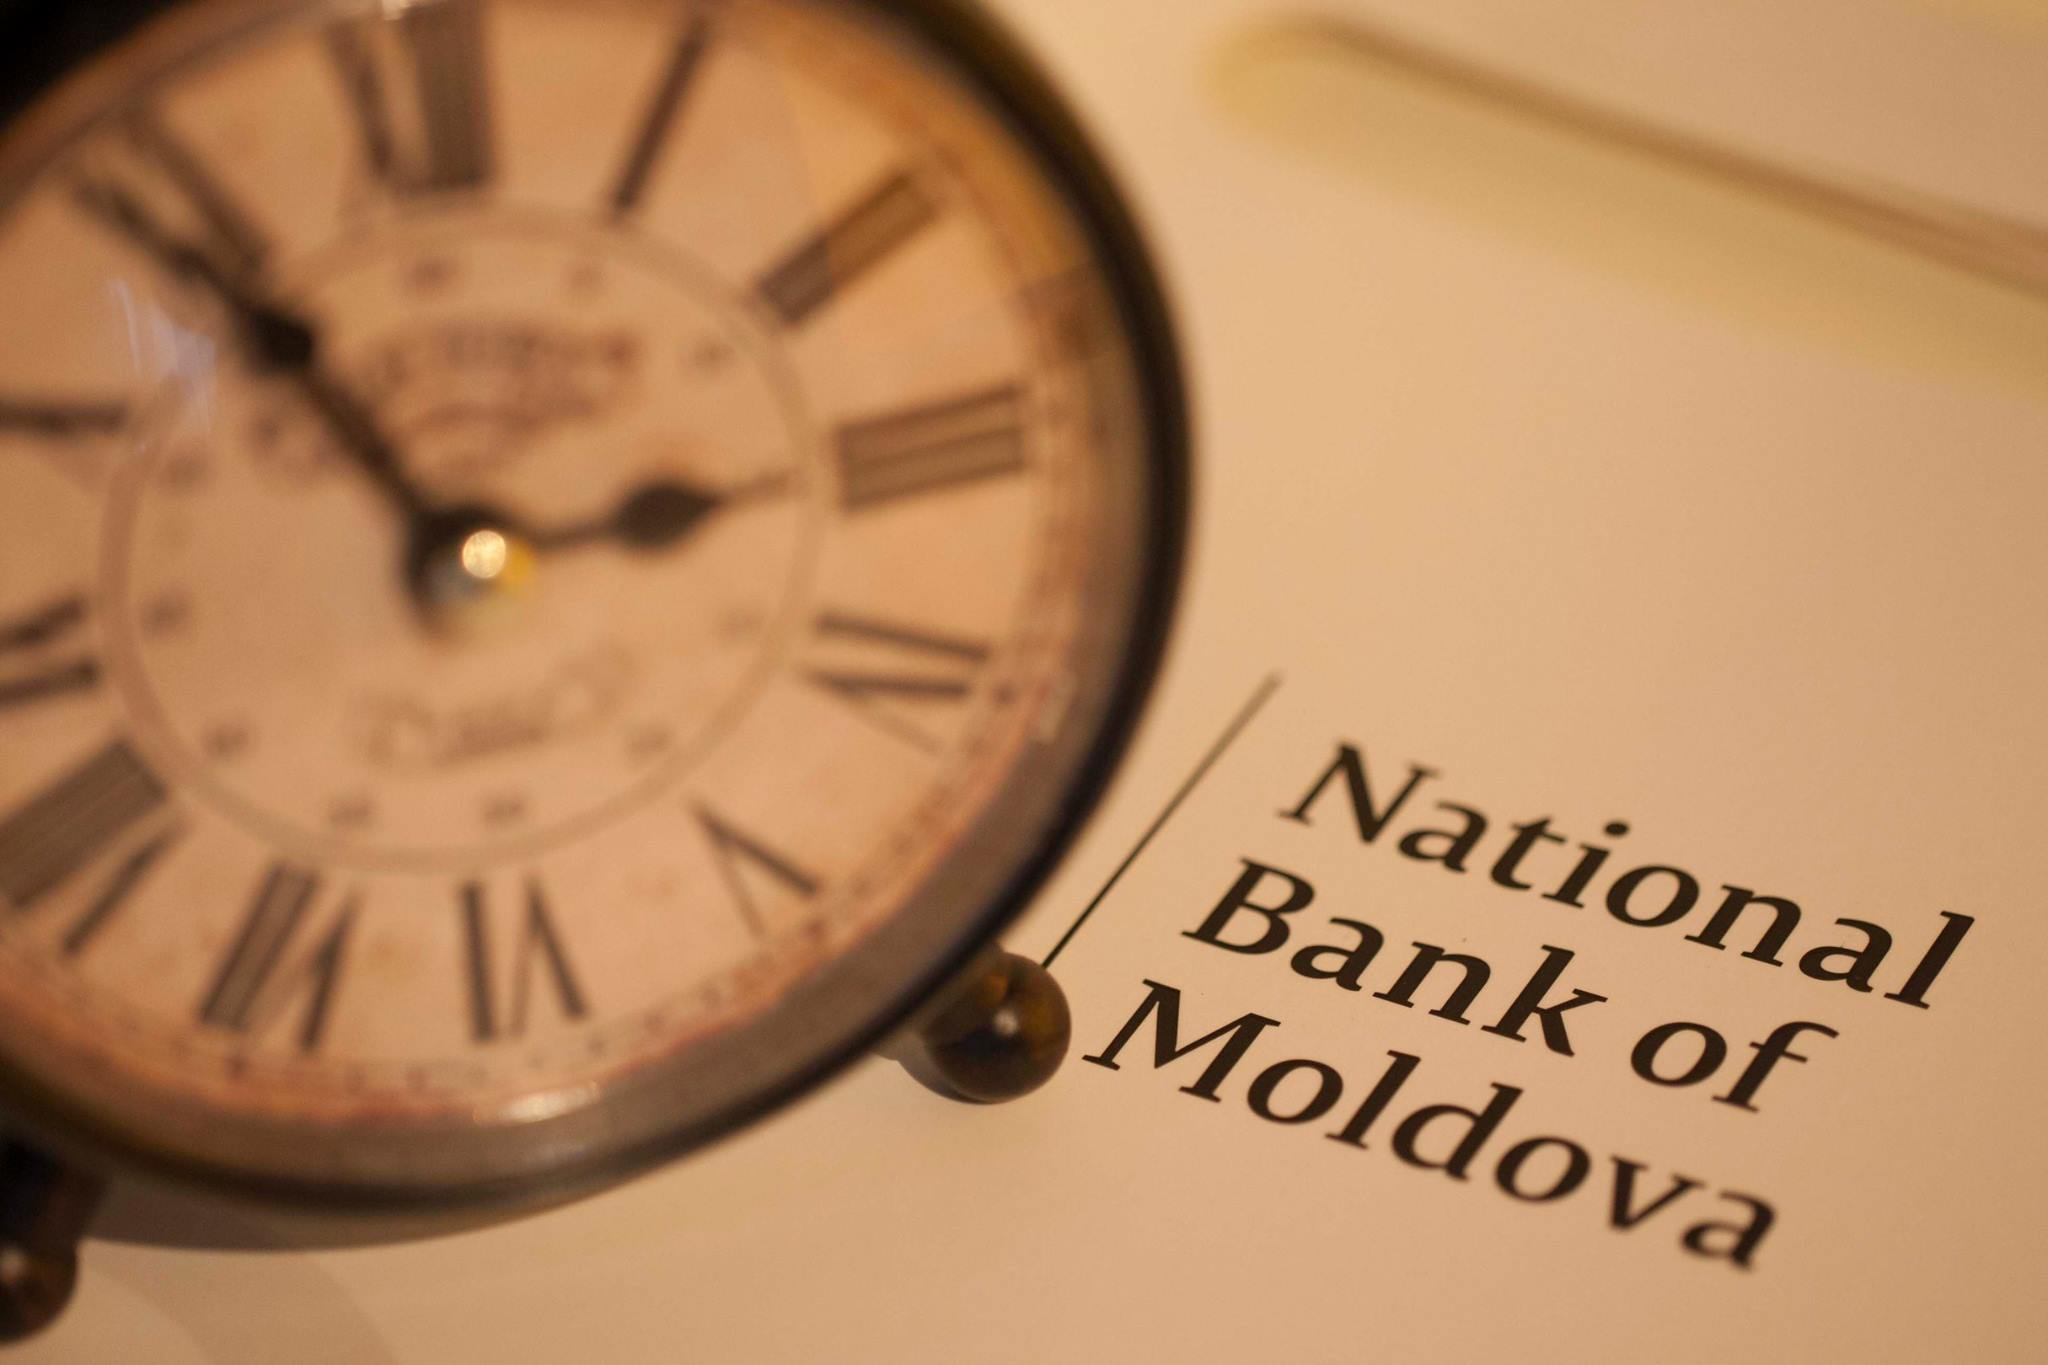 Moldova's foreign debt rises to $7.2 bln in Q1 - table